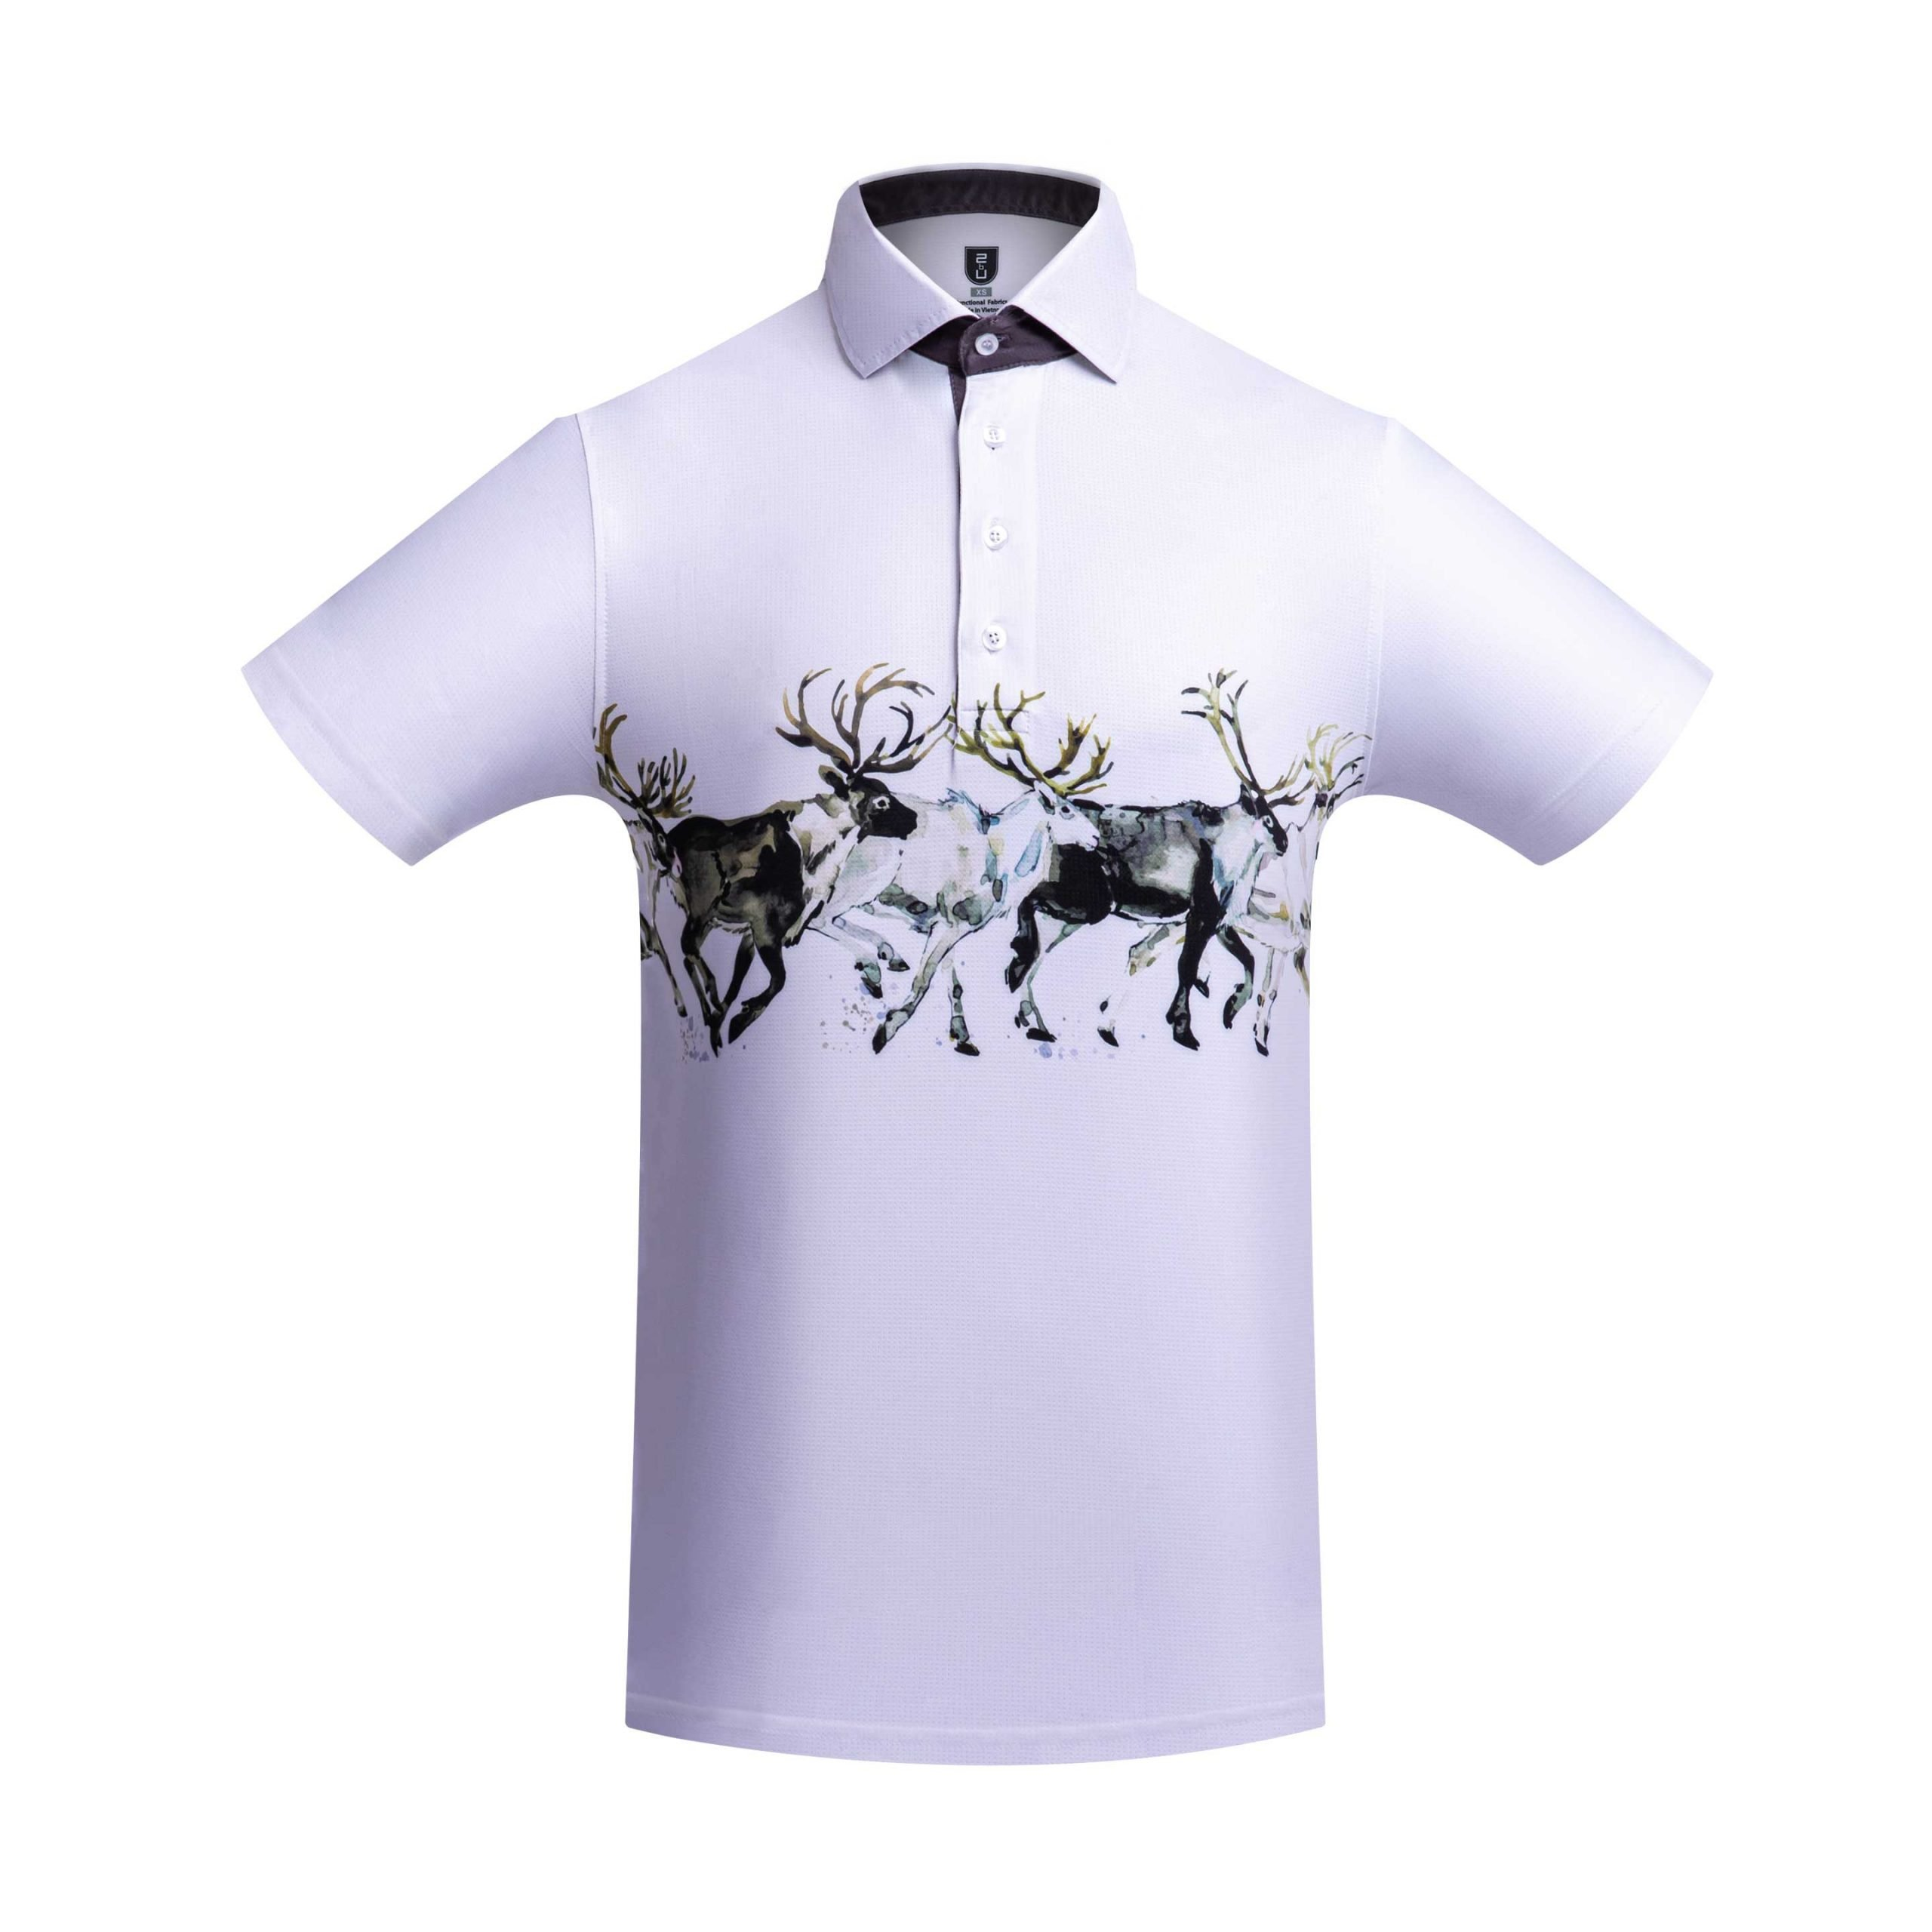 Golf shirt - Caribou